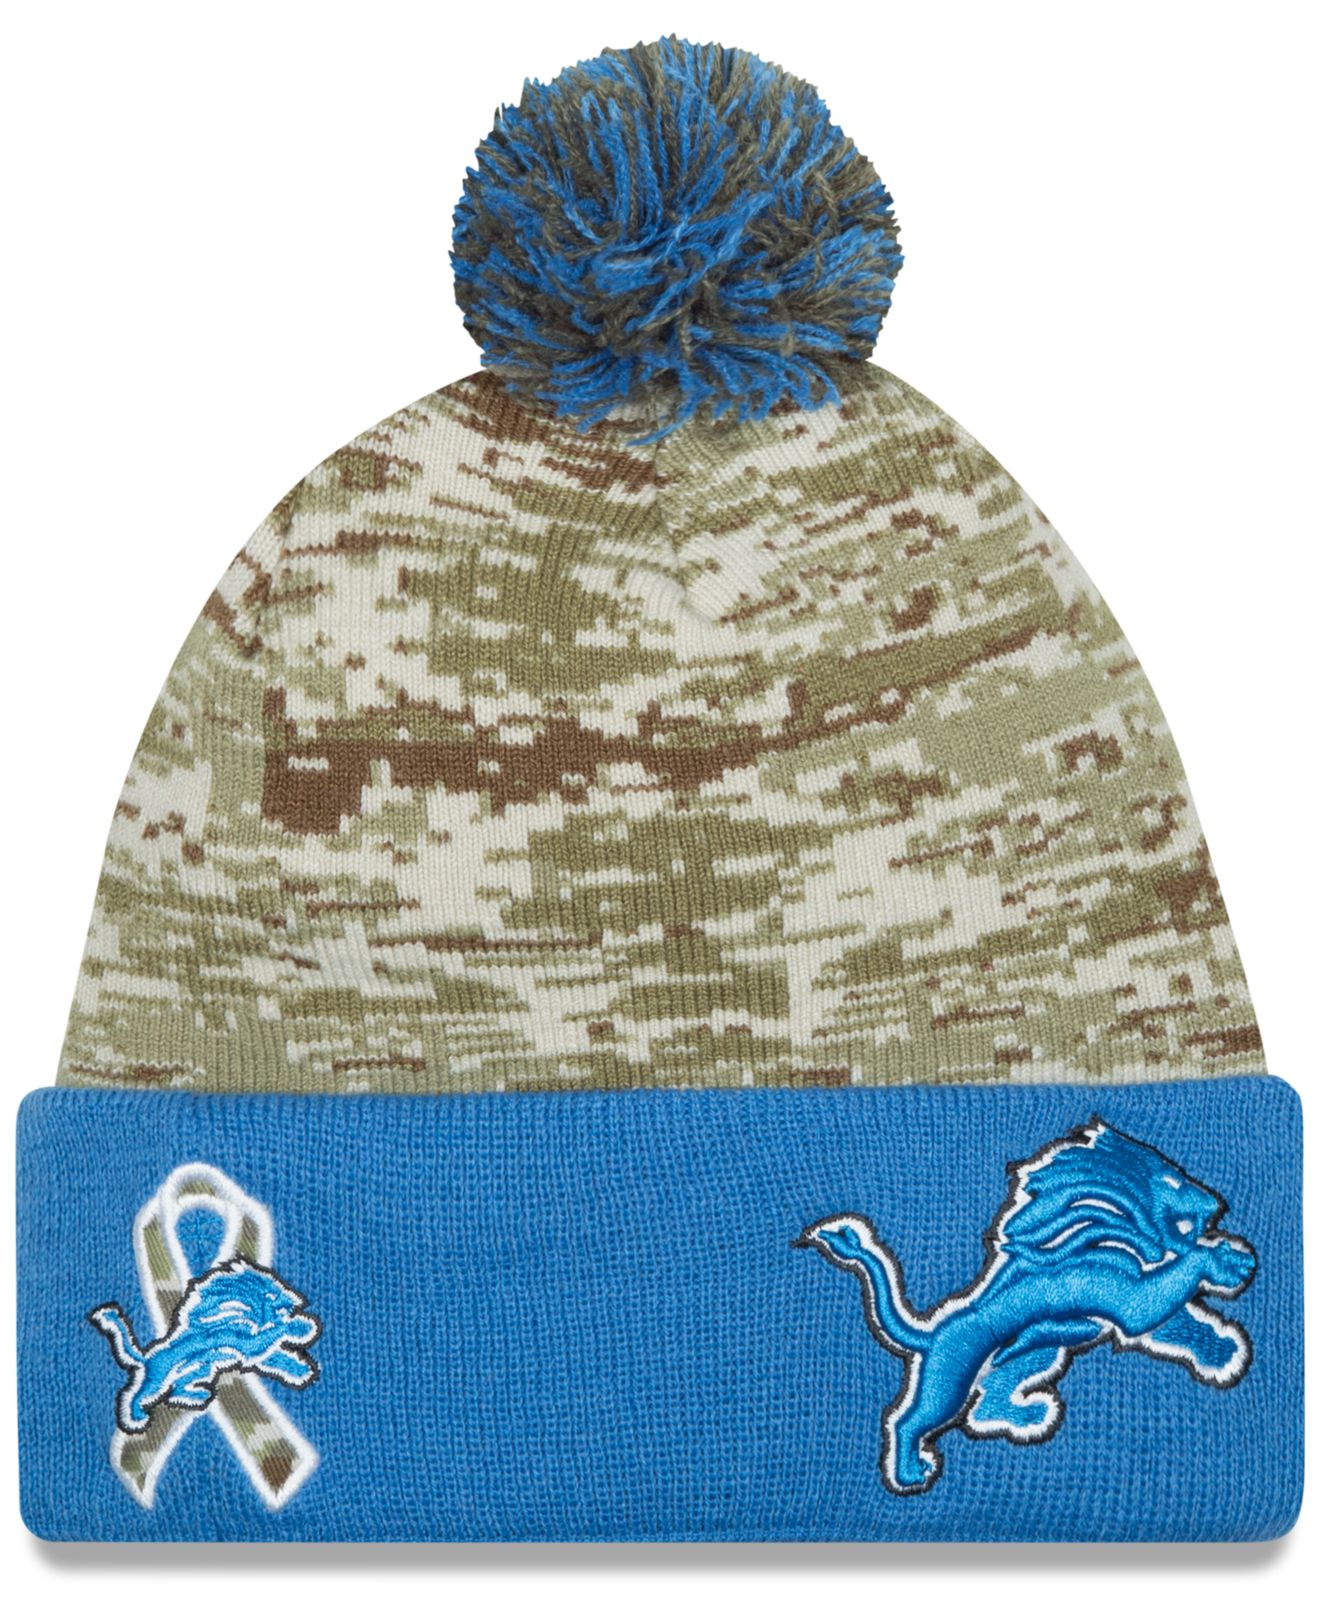 quality design b5e4a 254f2 ... usa lyst ktz detroit lions salute to service knit hat in green a6897  f78bf